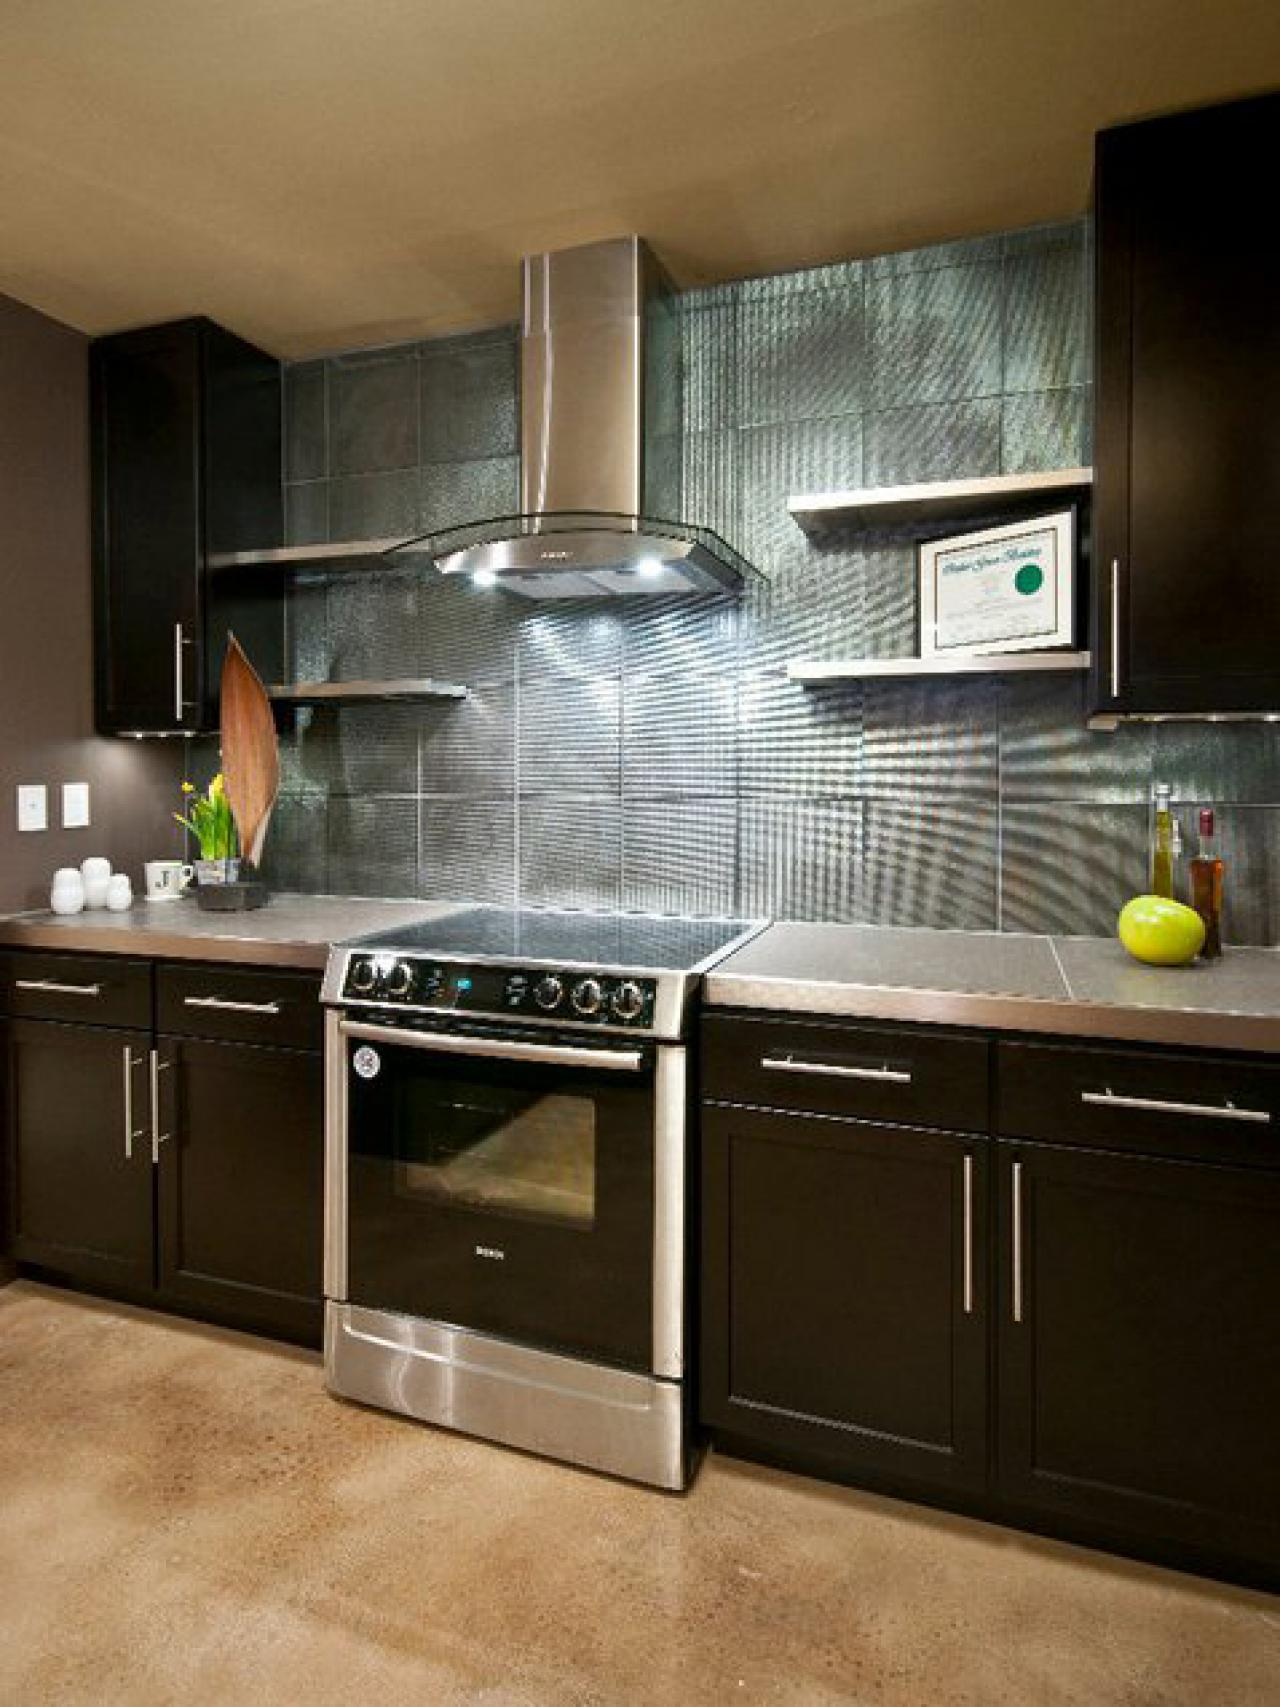 do-it-yourself diy kitchen backsplash ideas + hgtv pictures | hgtv